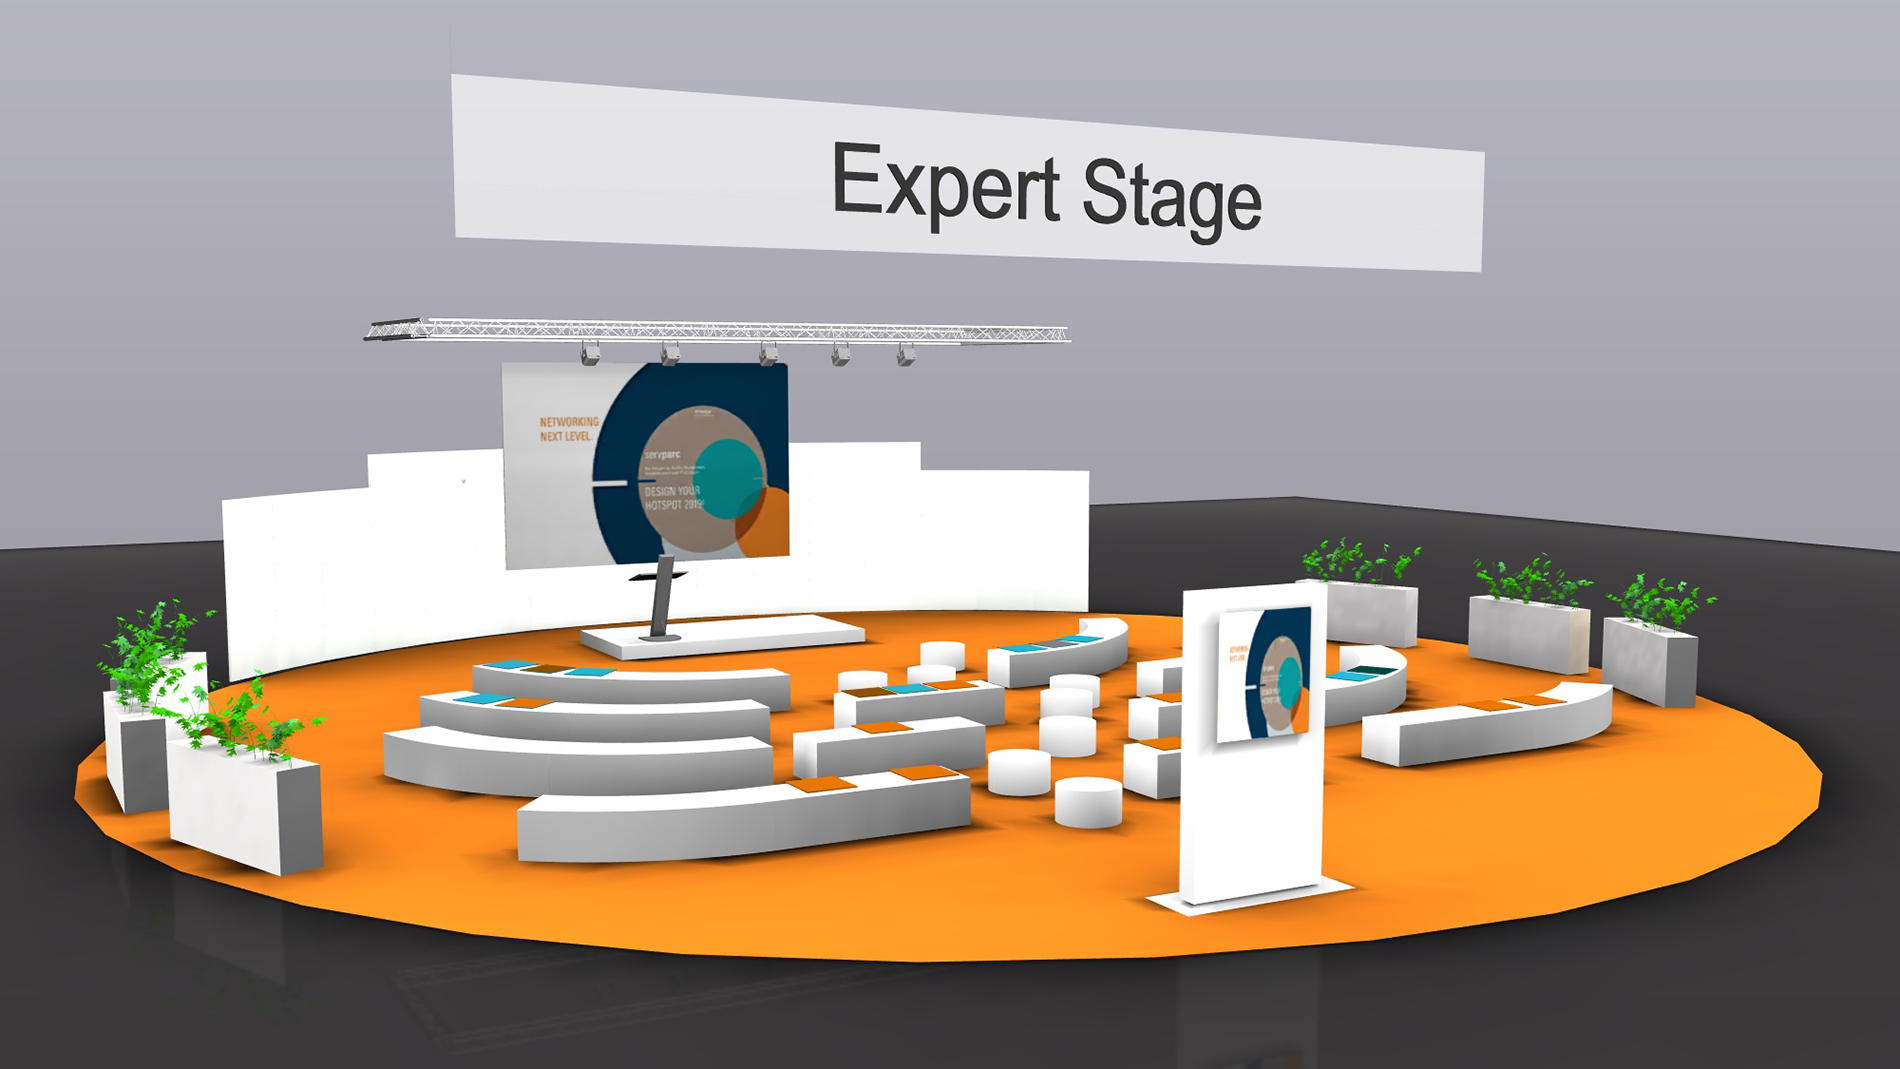 Expert Stage